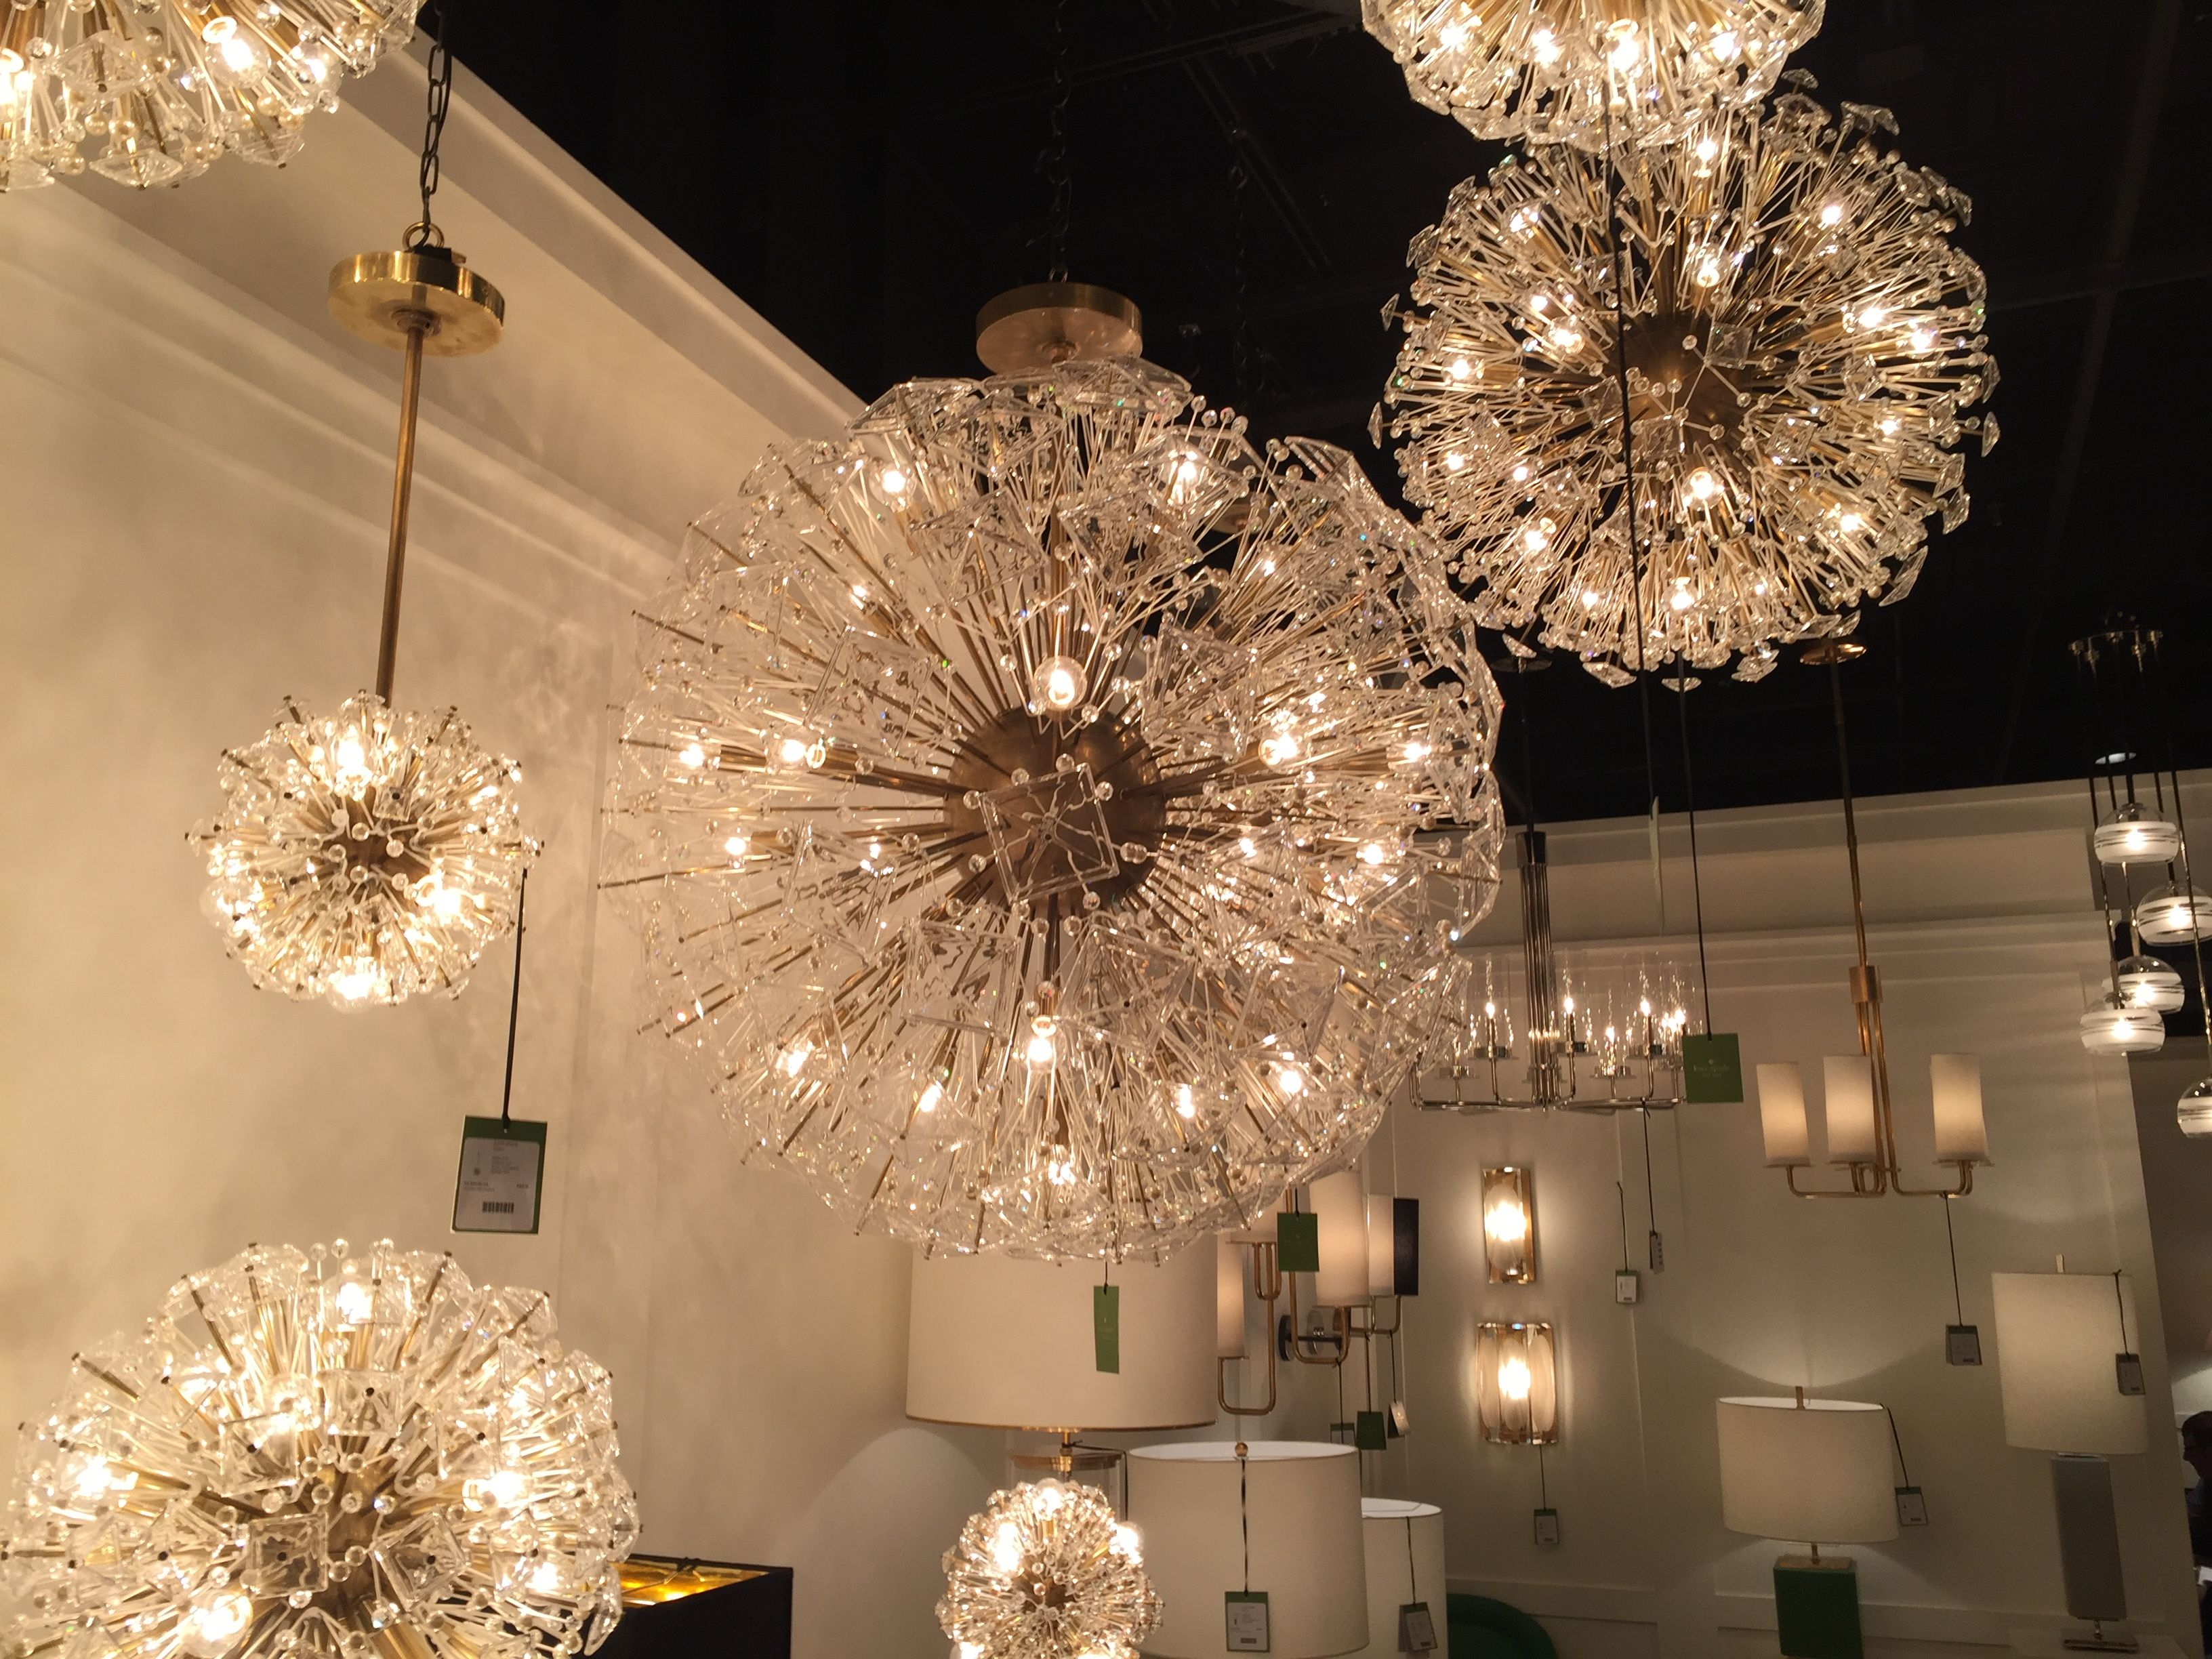 Pin by circa lighting on kate spade new york pinterest entry entry chandelier circa lighting ceiling lighting kate spade chandeliers ceilings drop ceiling lighting chandelier lighting overhead lighting mozeypictures Gallery